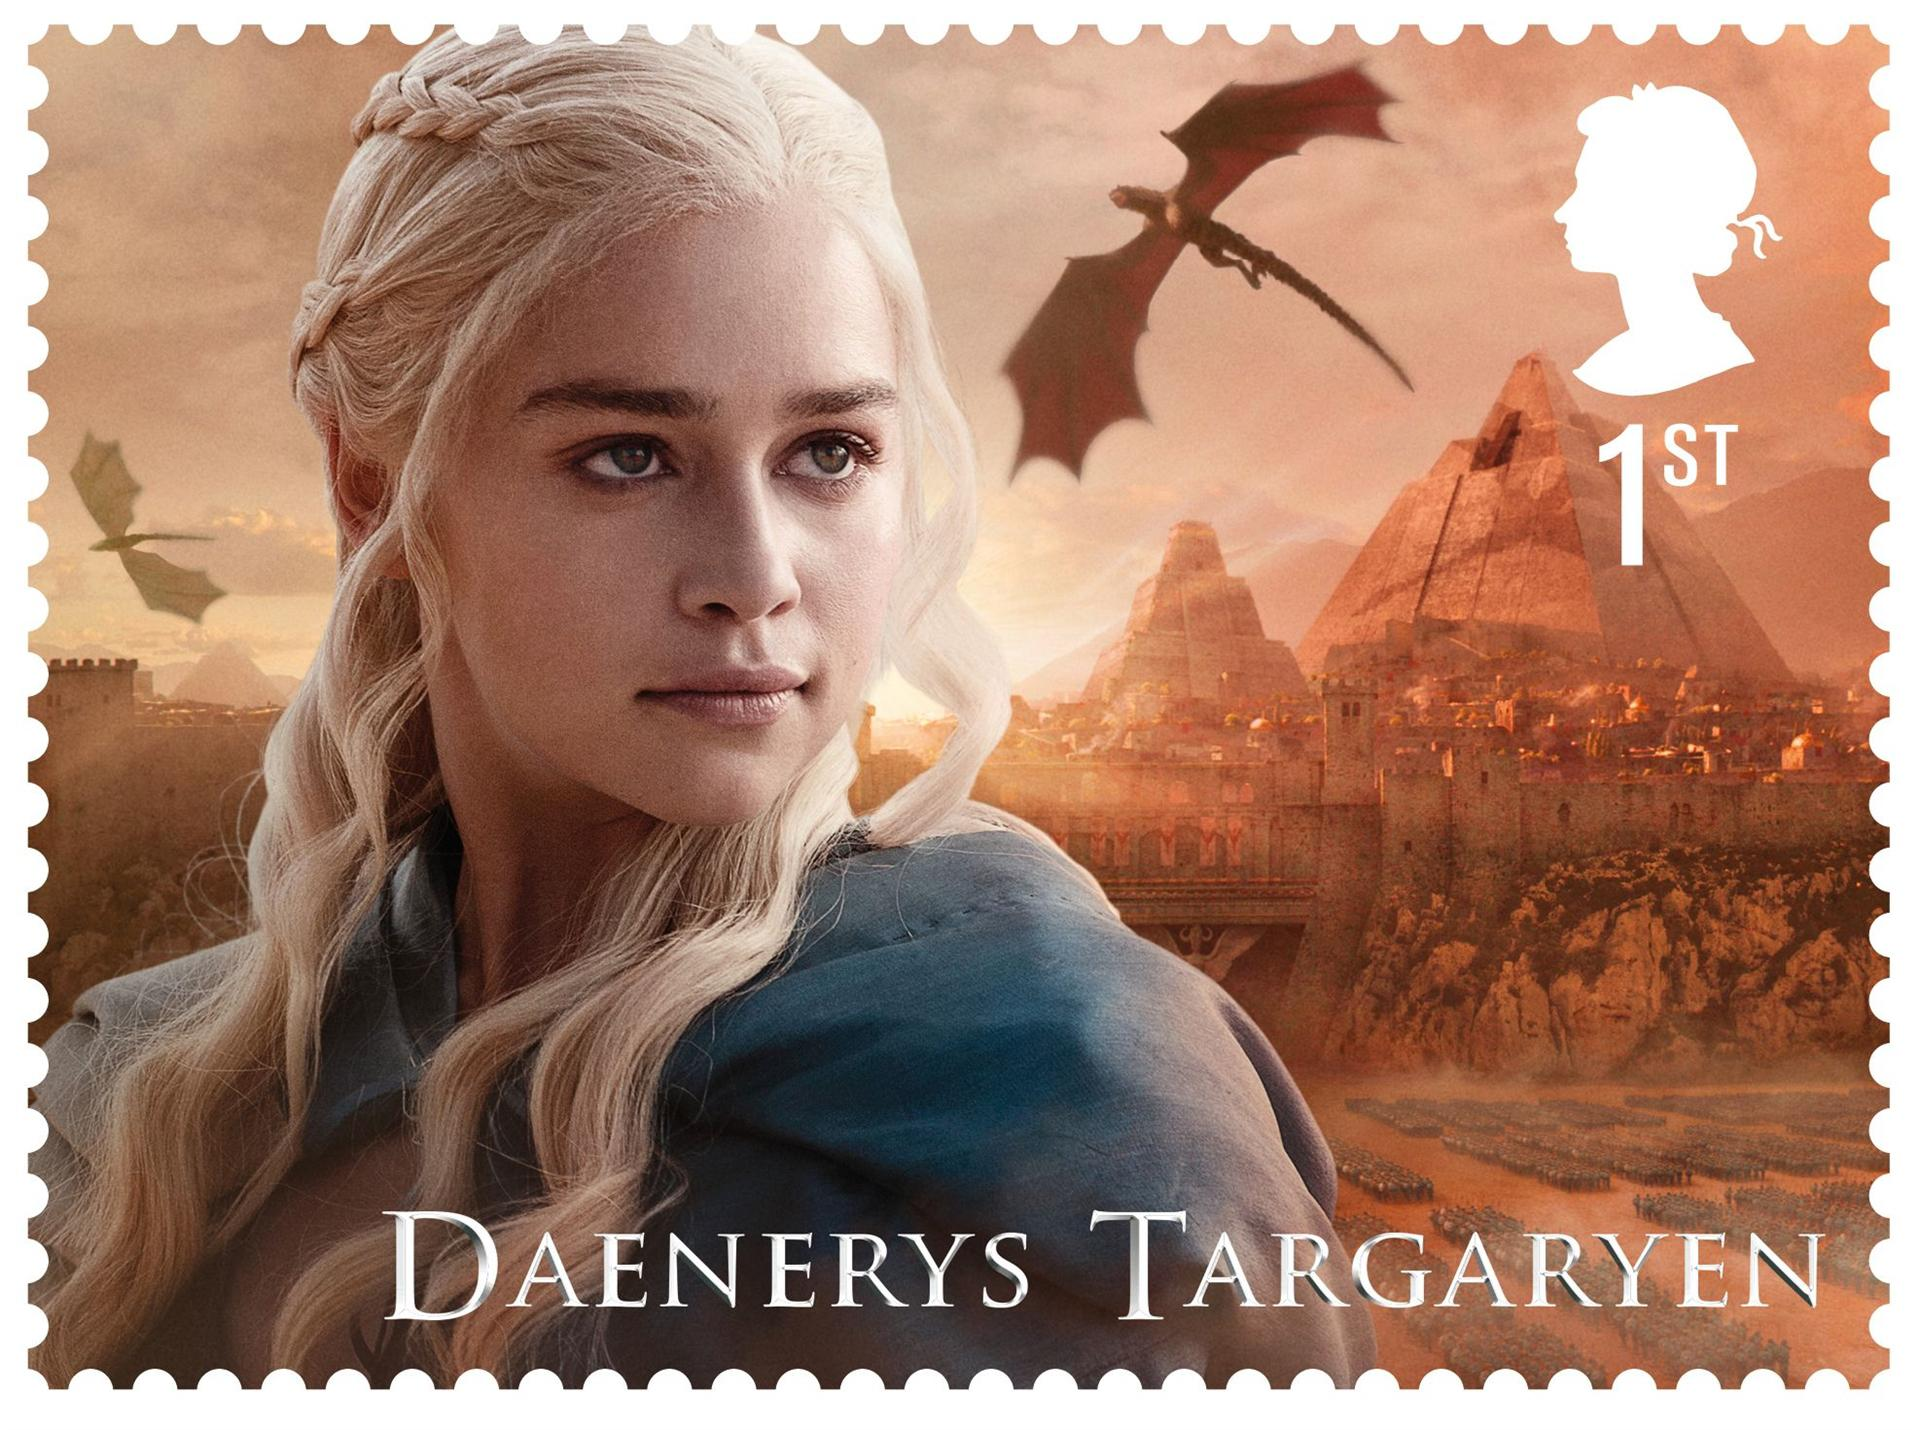 Britain celebrates Game of Thrones with new stamps